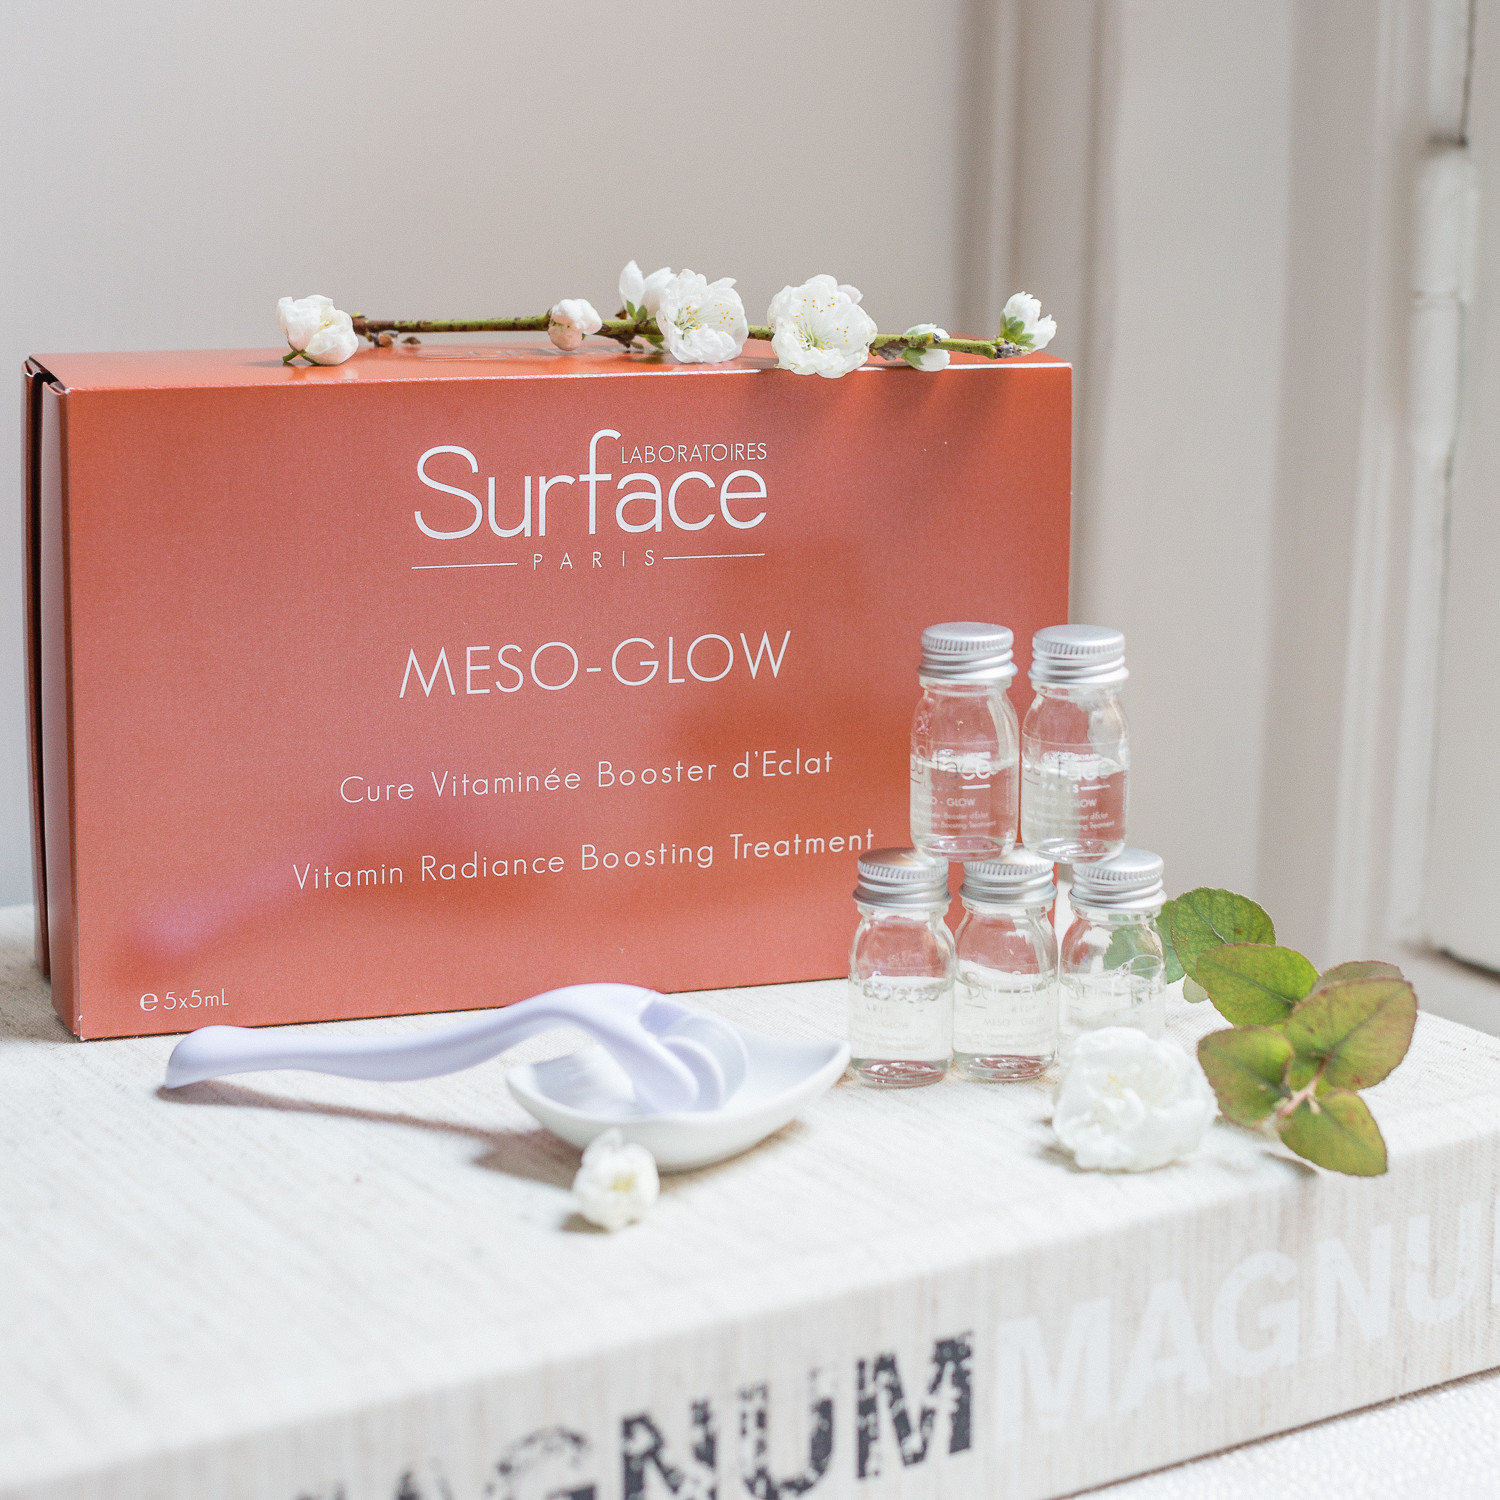 Surface Paris At Home Mesotherapy Meso Glow